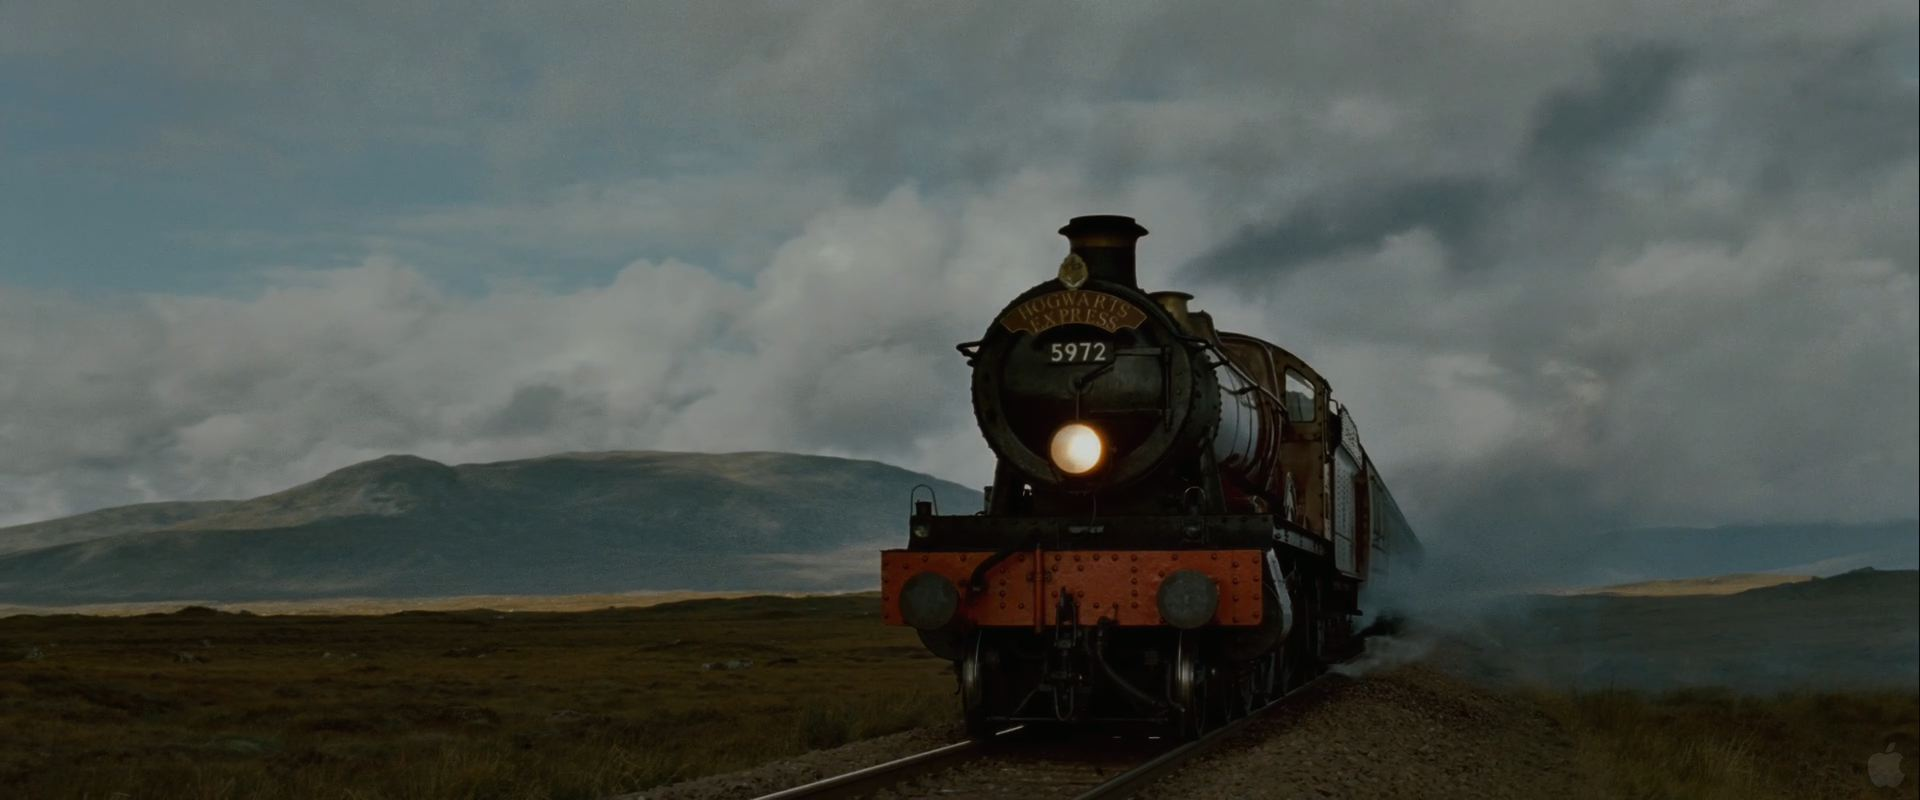 Lock Screen Wallpaper Iphone 7 Hogwarts Express Train From Harry Potter And The Deathly